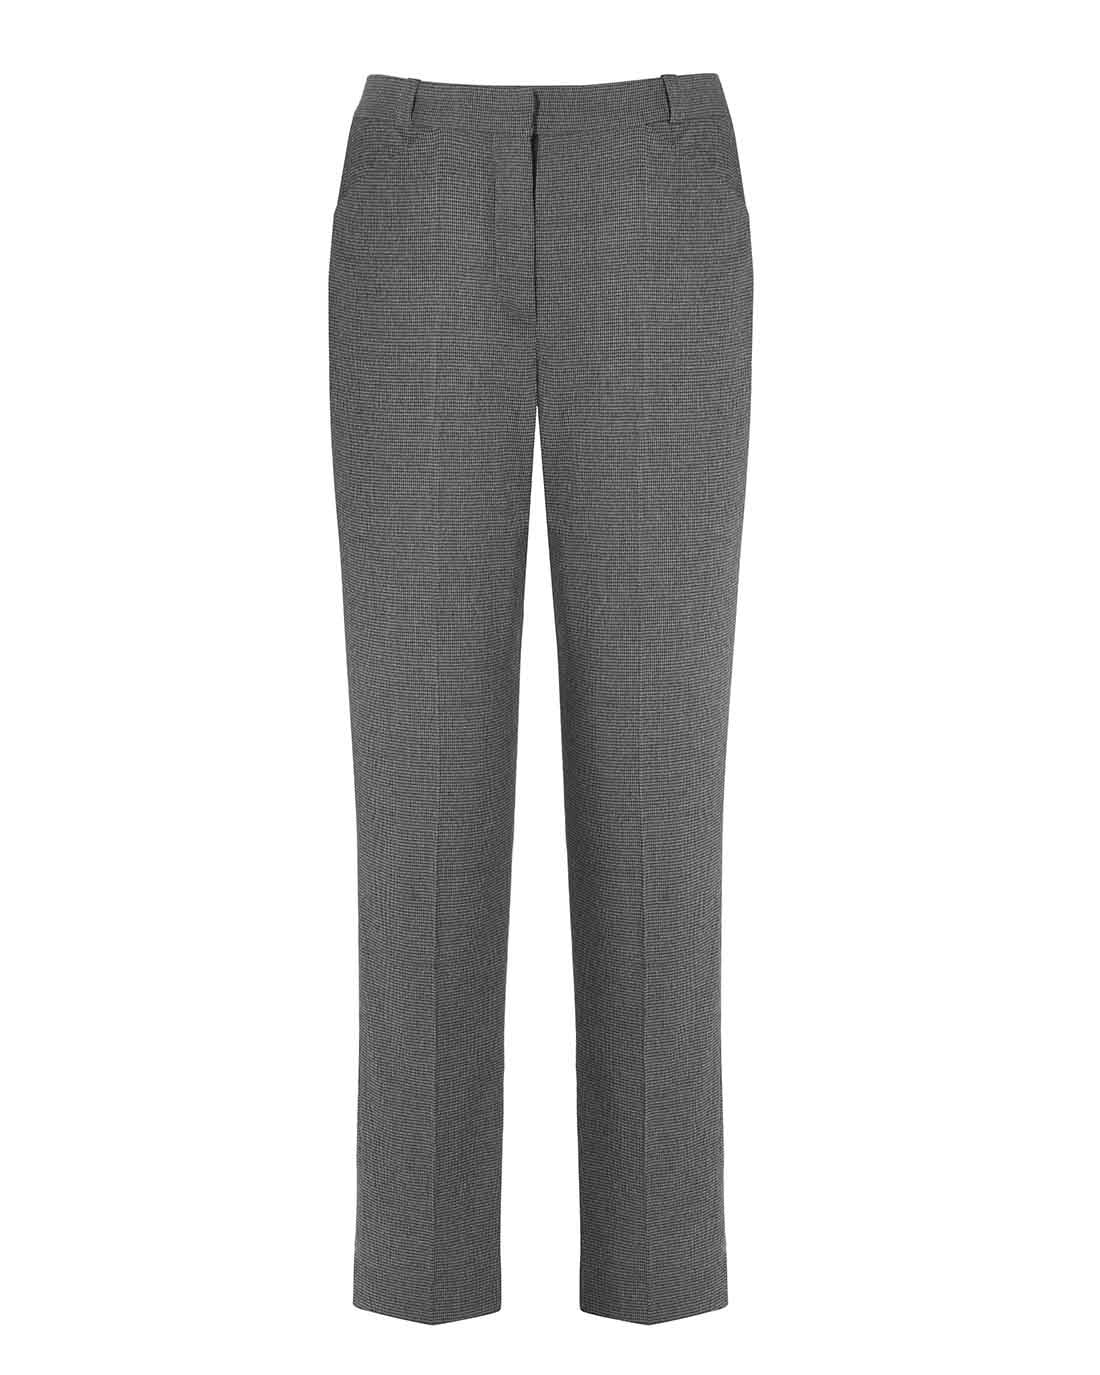 High waist herringbone tailored cigarette suit trouser for work